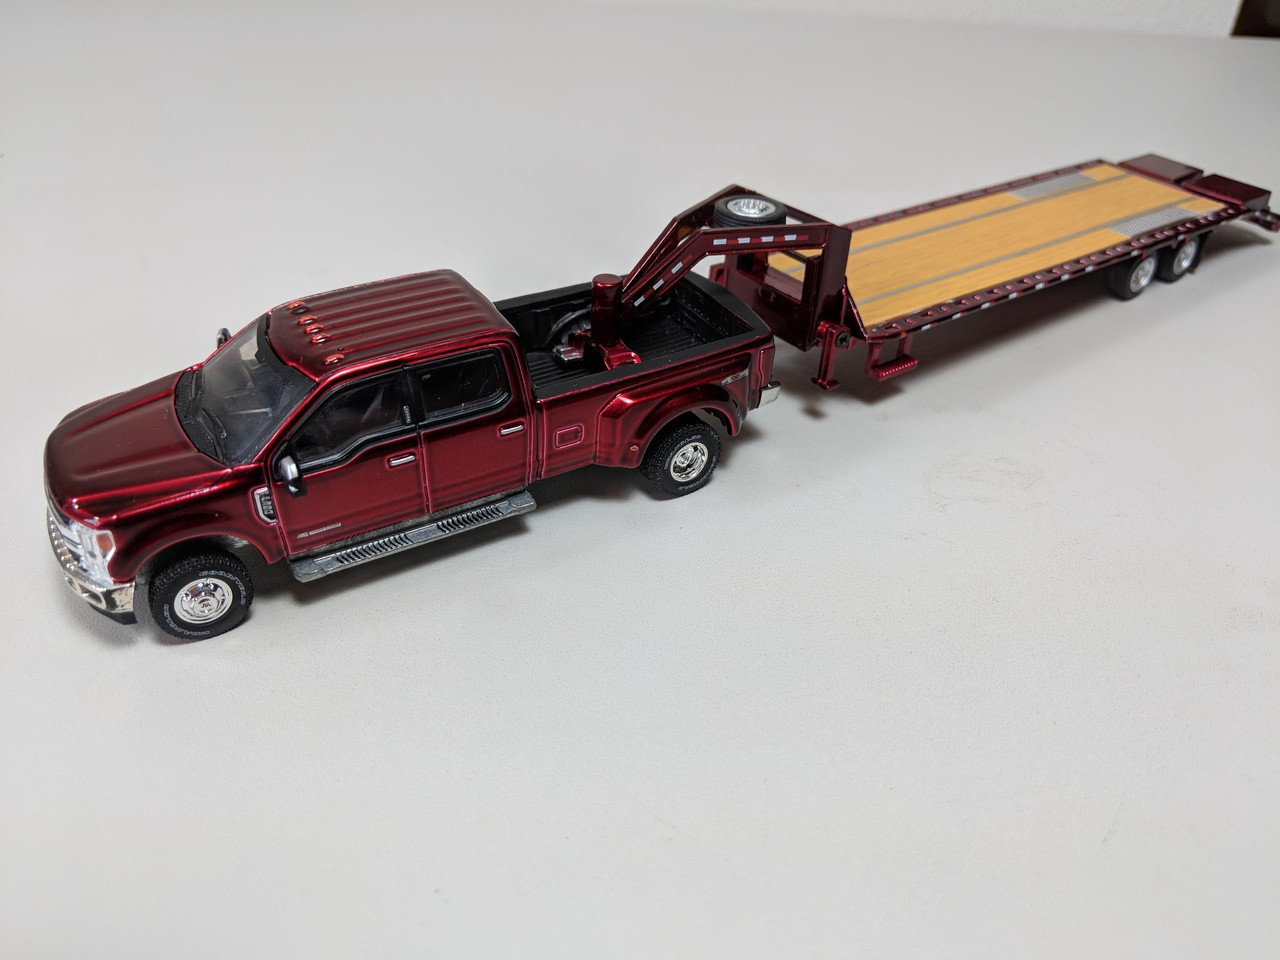 1 64 Hitch Tow 2018 Ford F 350 King Ranch Dually Ruby Red And Hd Gooseneck Trailer Town And Country Toys